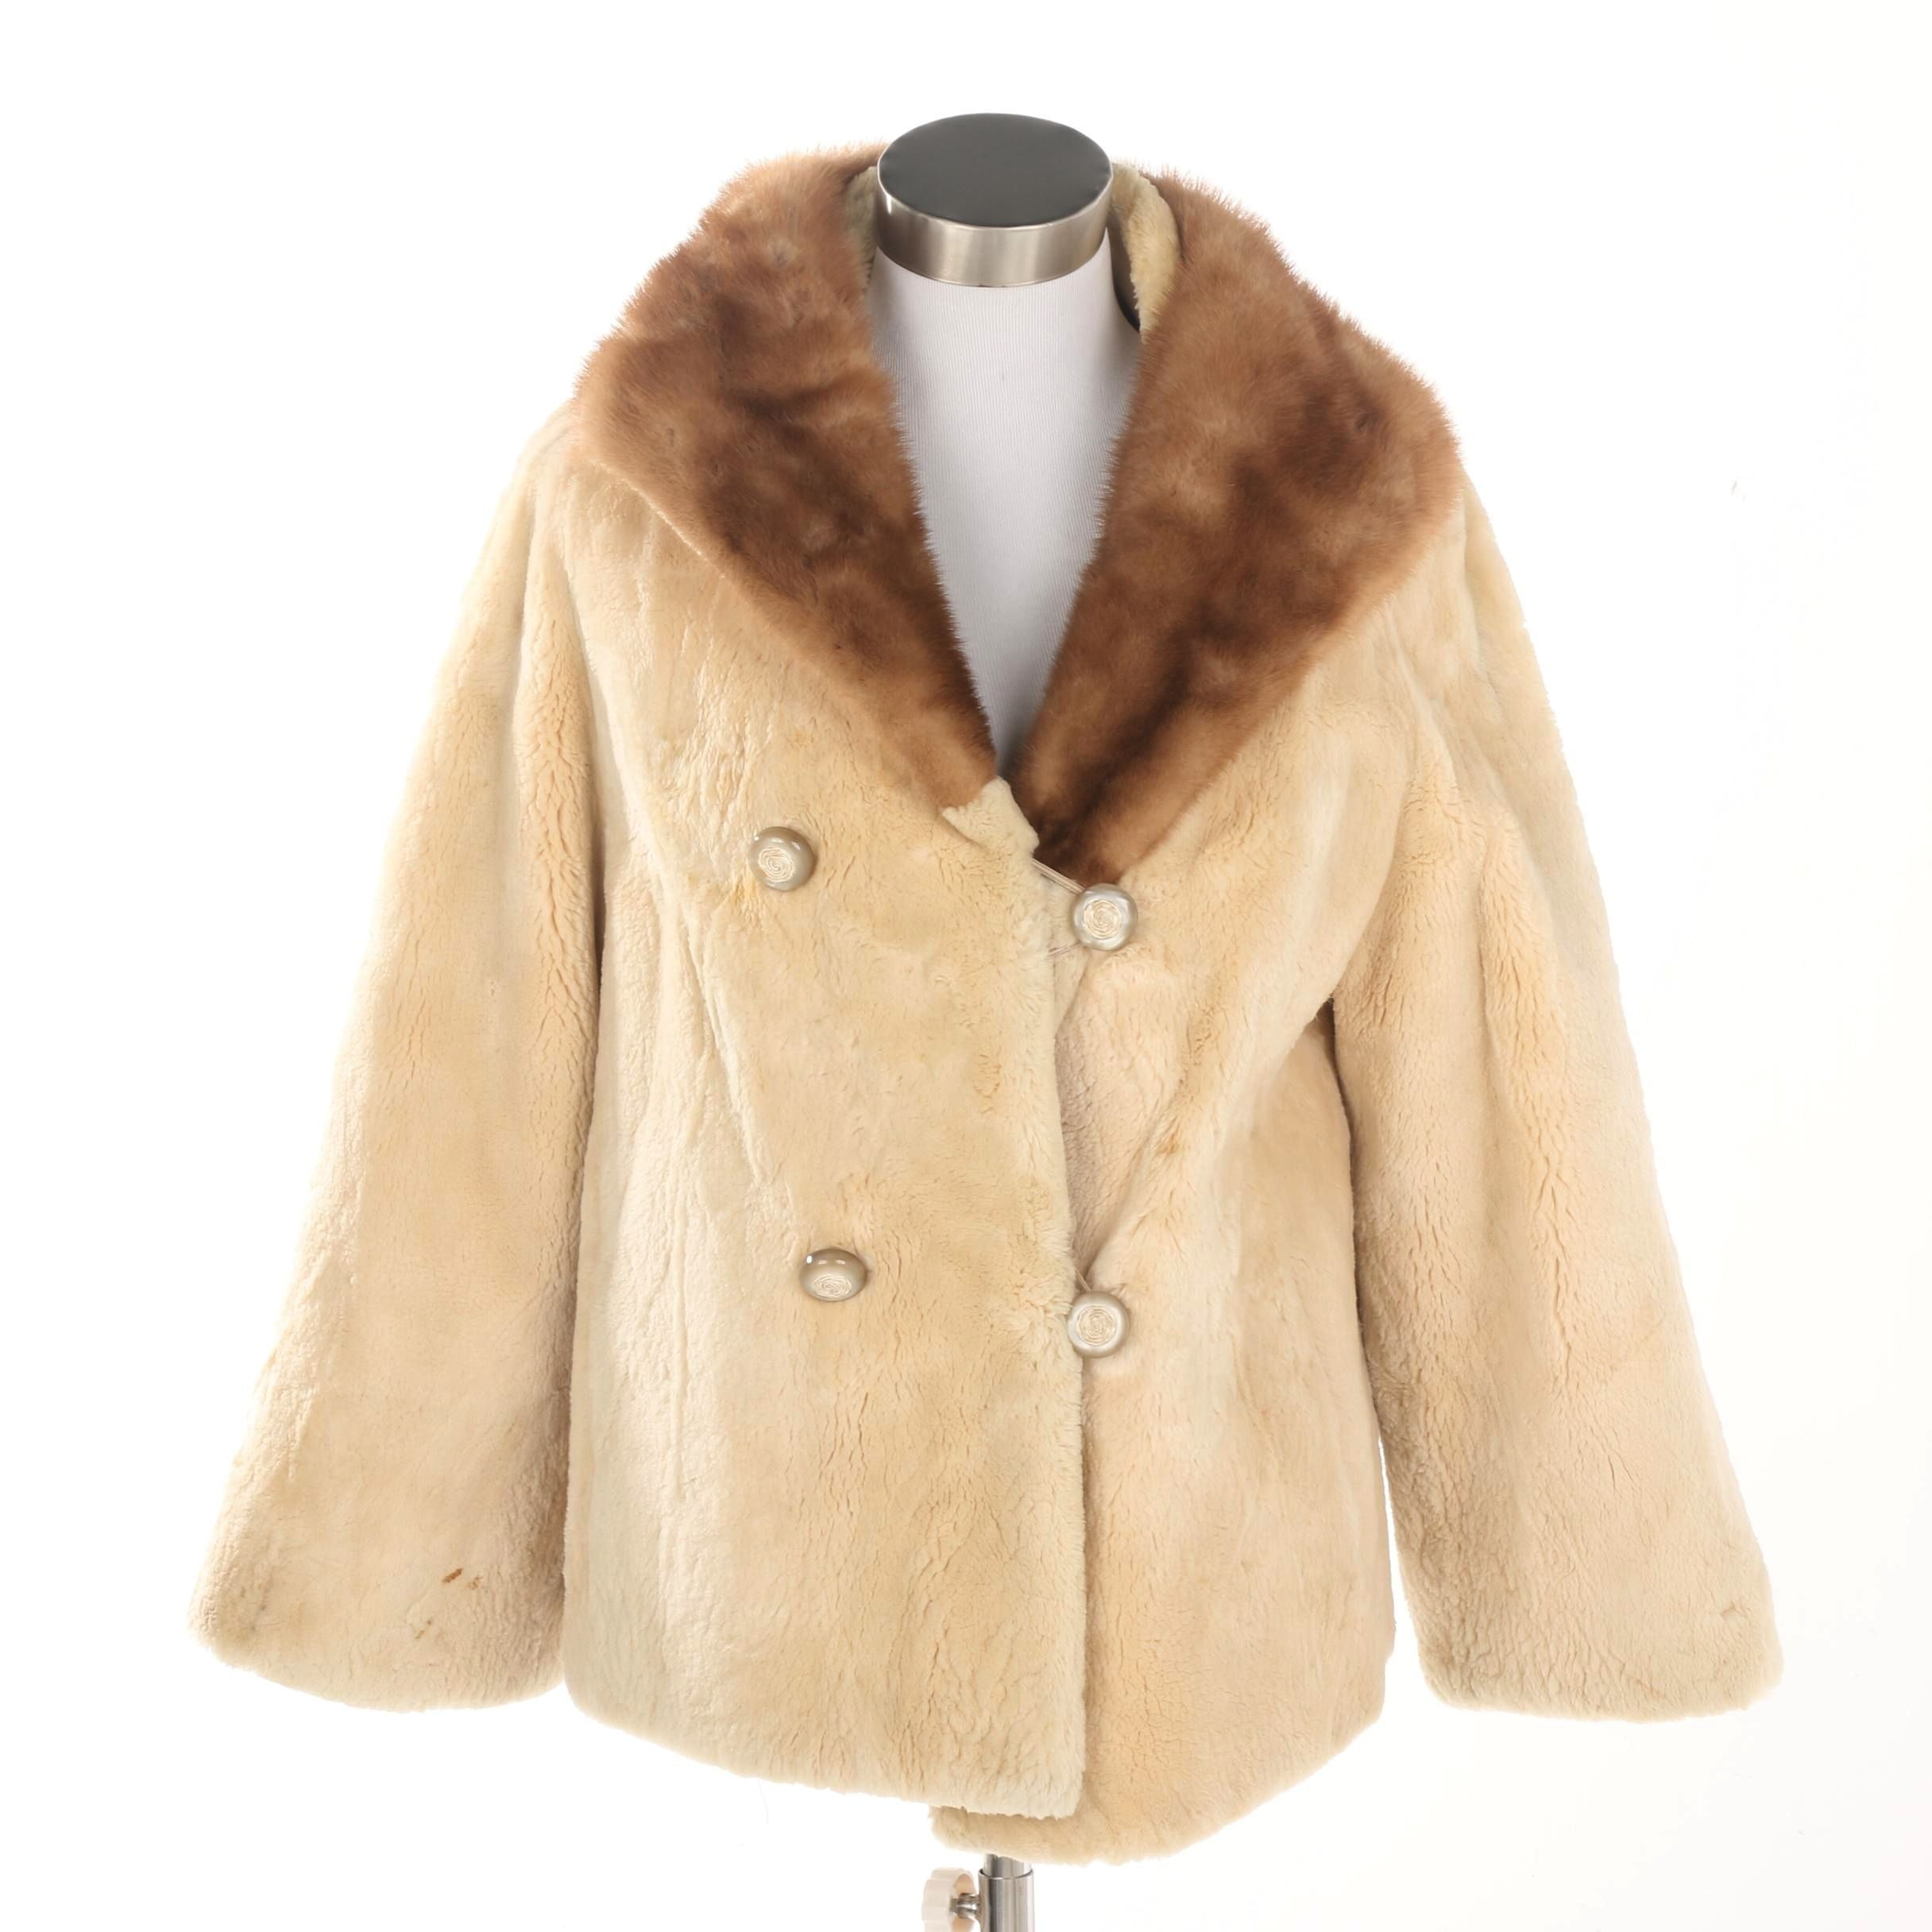 Vintage Titche's Plucked and Sheared Beaver Fur Coat with Mink Fur Collar